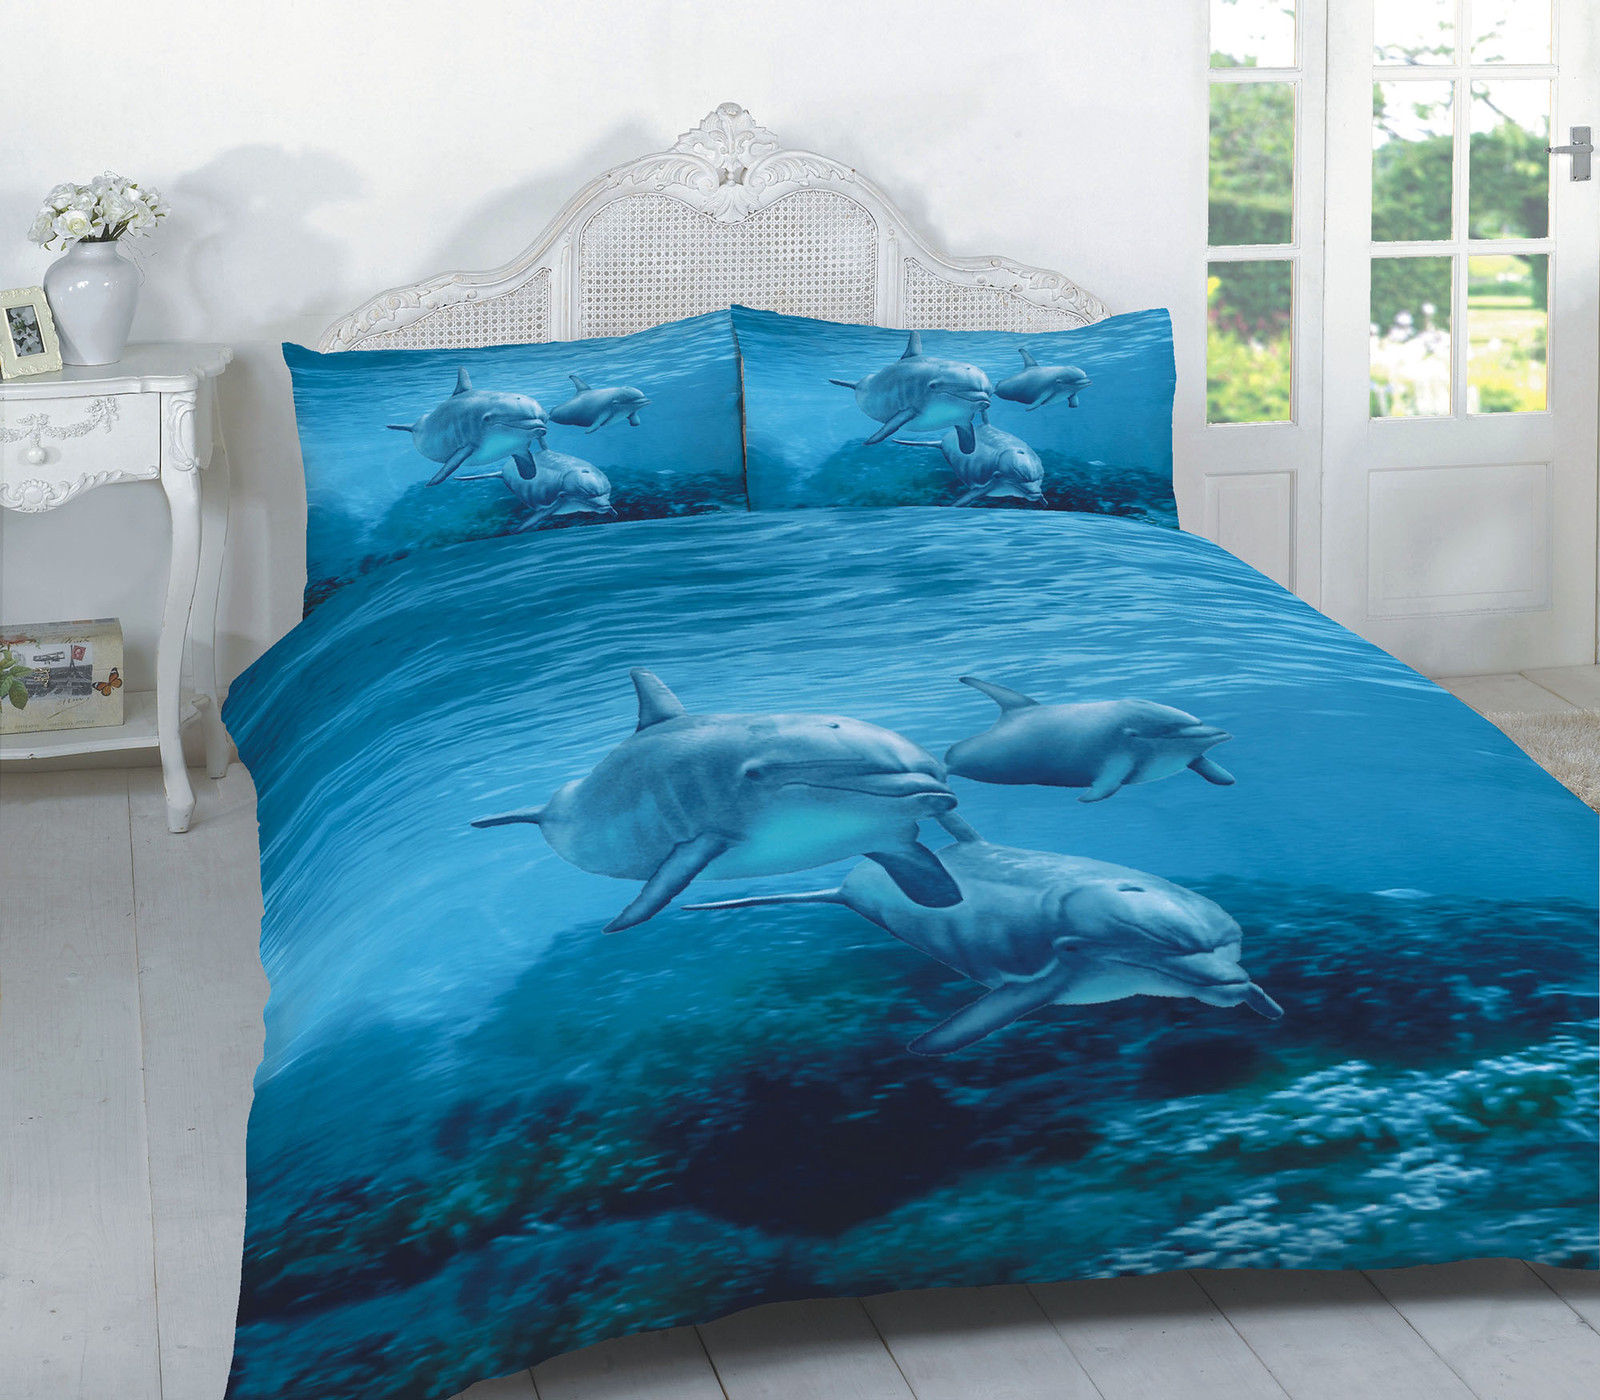 Animal Dolphin Multi 3d Effect Duvet Cover Bedding Set